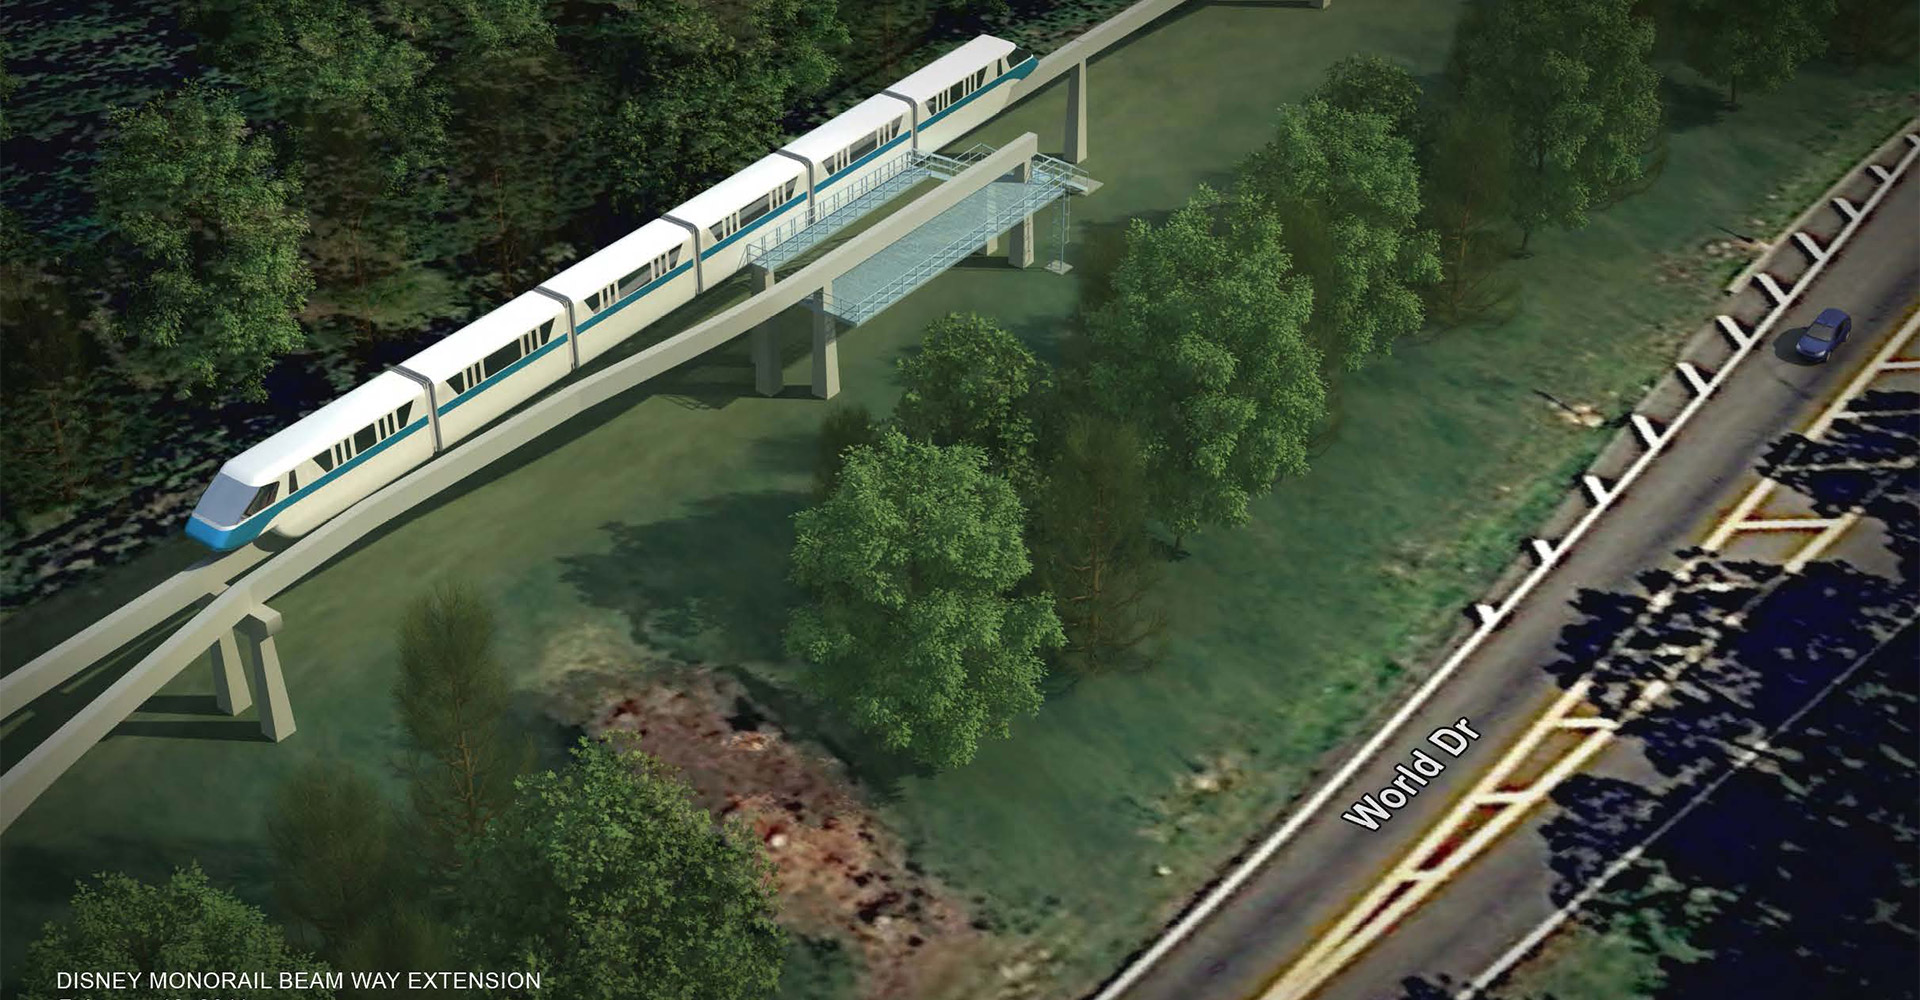 Aerial rendering of the Disney Monorail.